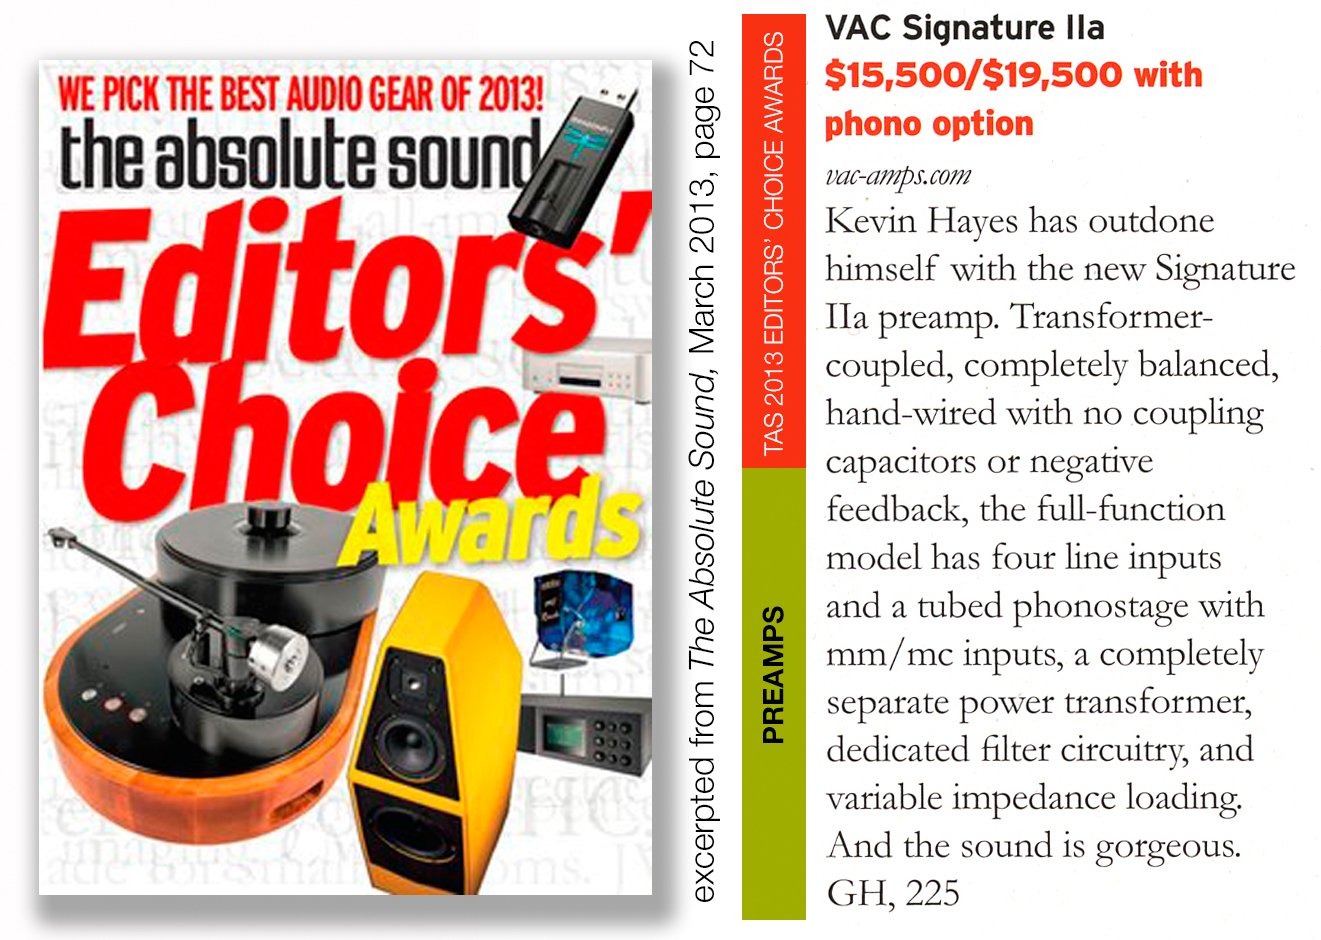 Editors' Choice Award: VAC Signature IIa